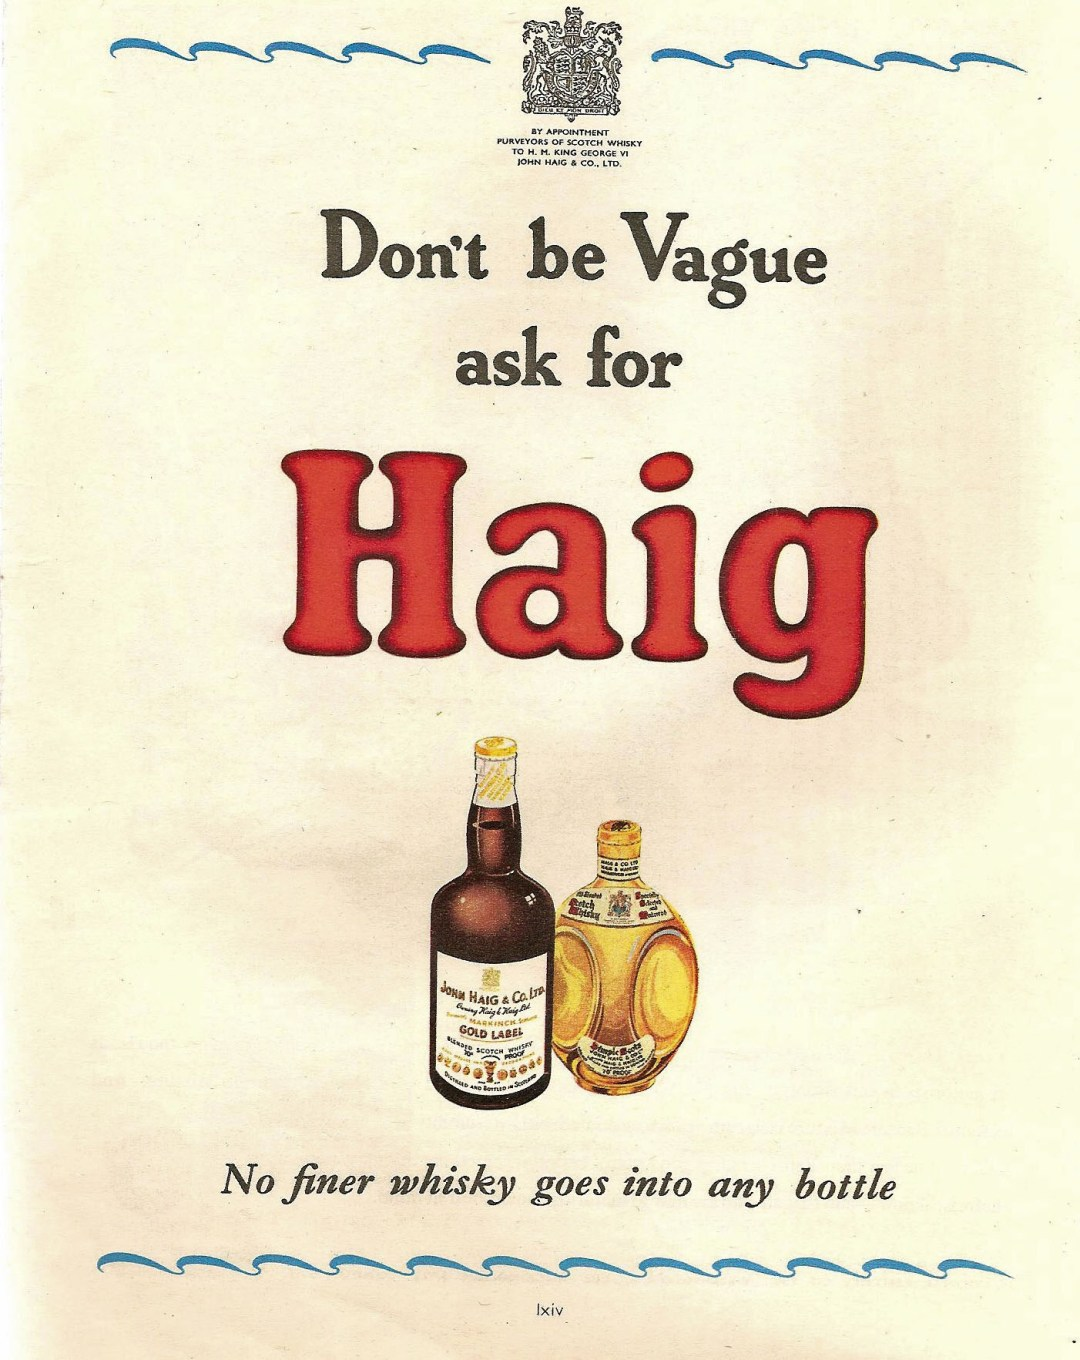 Dont'_be_Vague_ask_for_Haig_advertisement